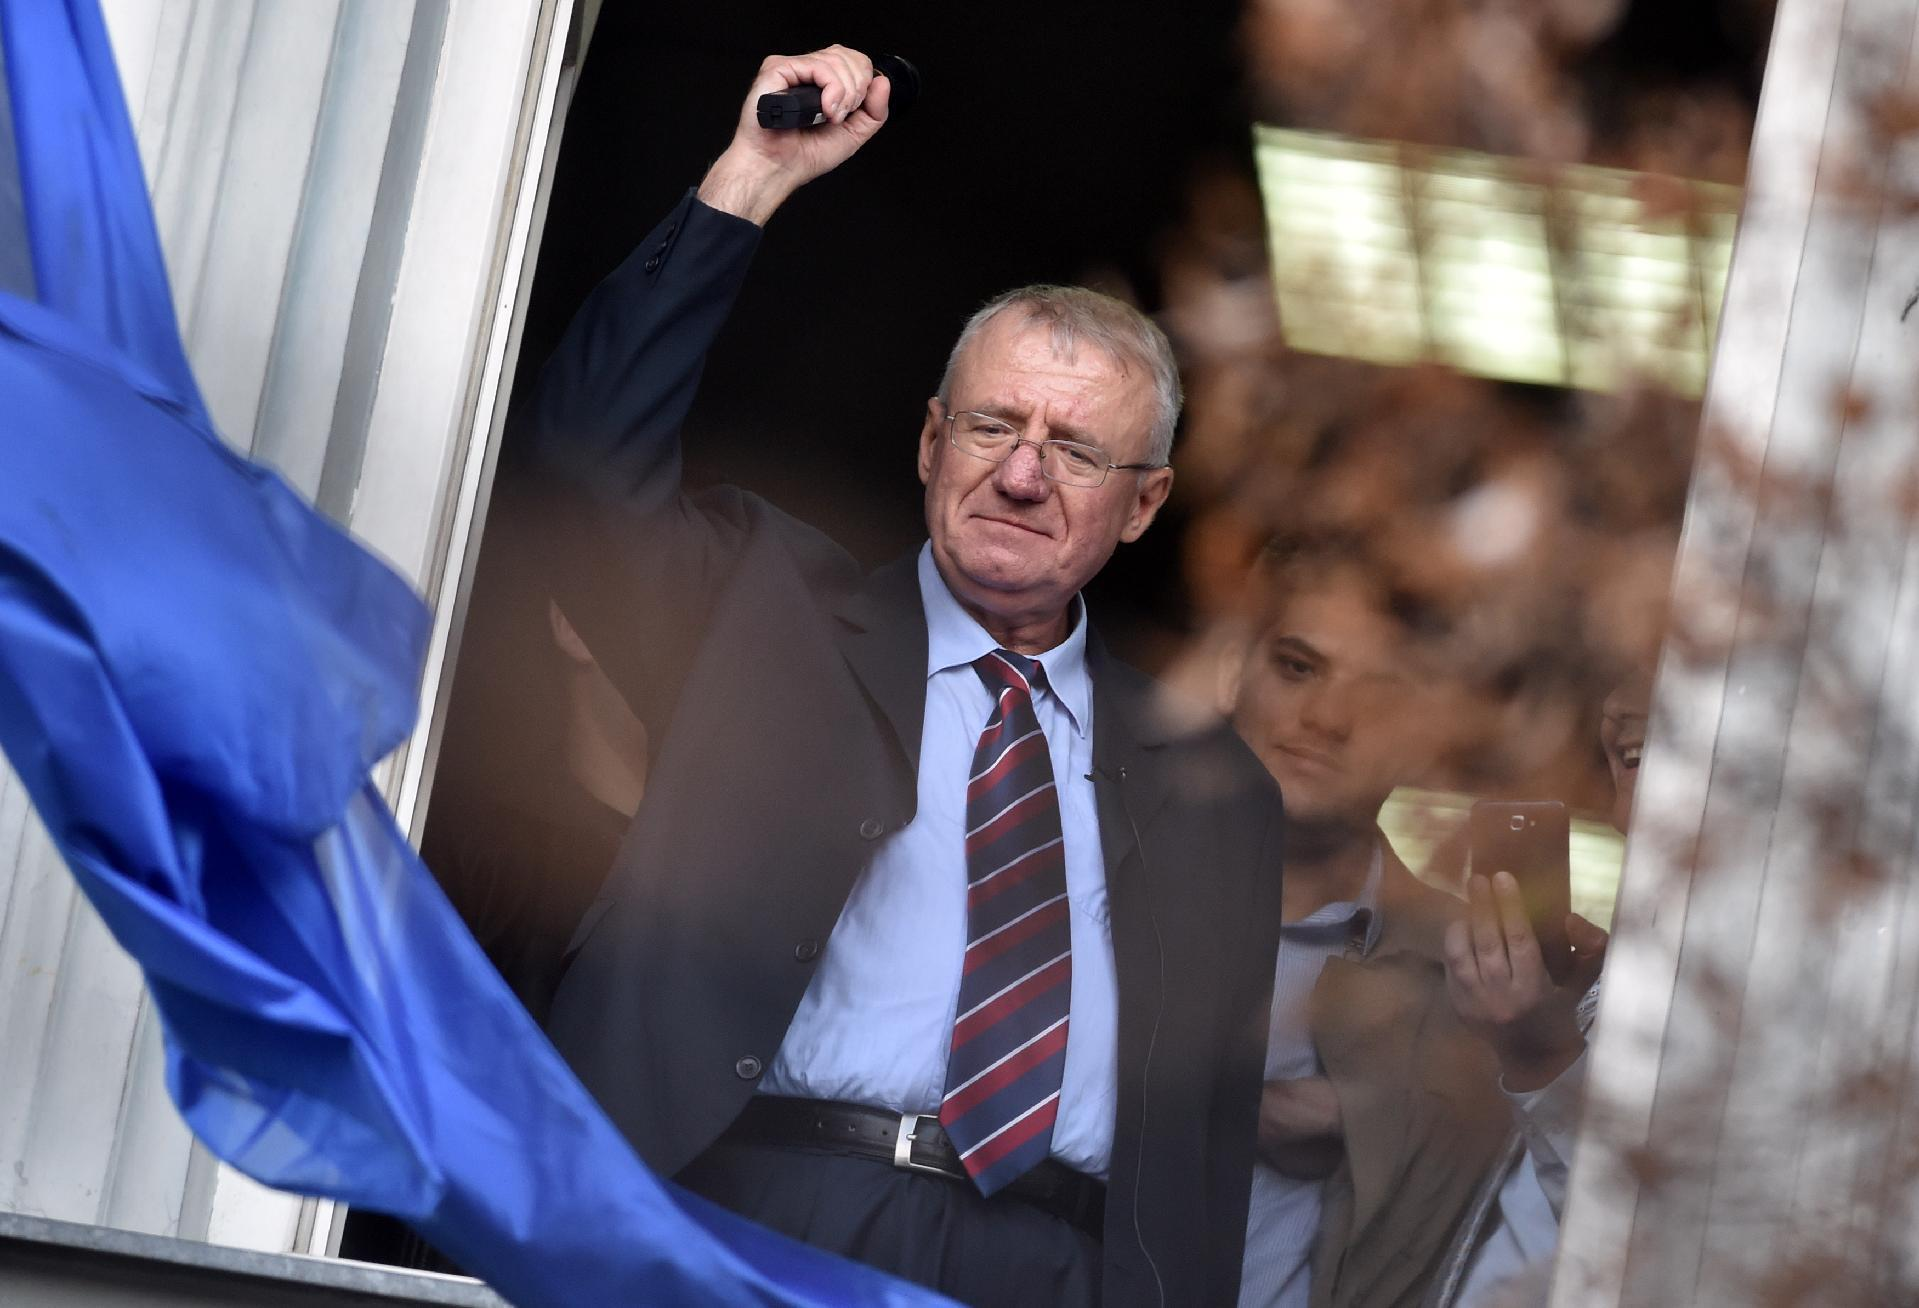 Serb ultranationalist leader Vojislav Seselj waves at supporters on November 12, 2014 after arriving at his Radical Serb Party (SRS) headquarters in Zemun, near Belgrade